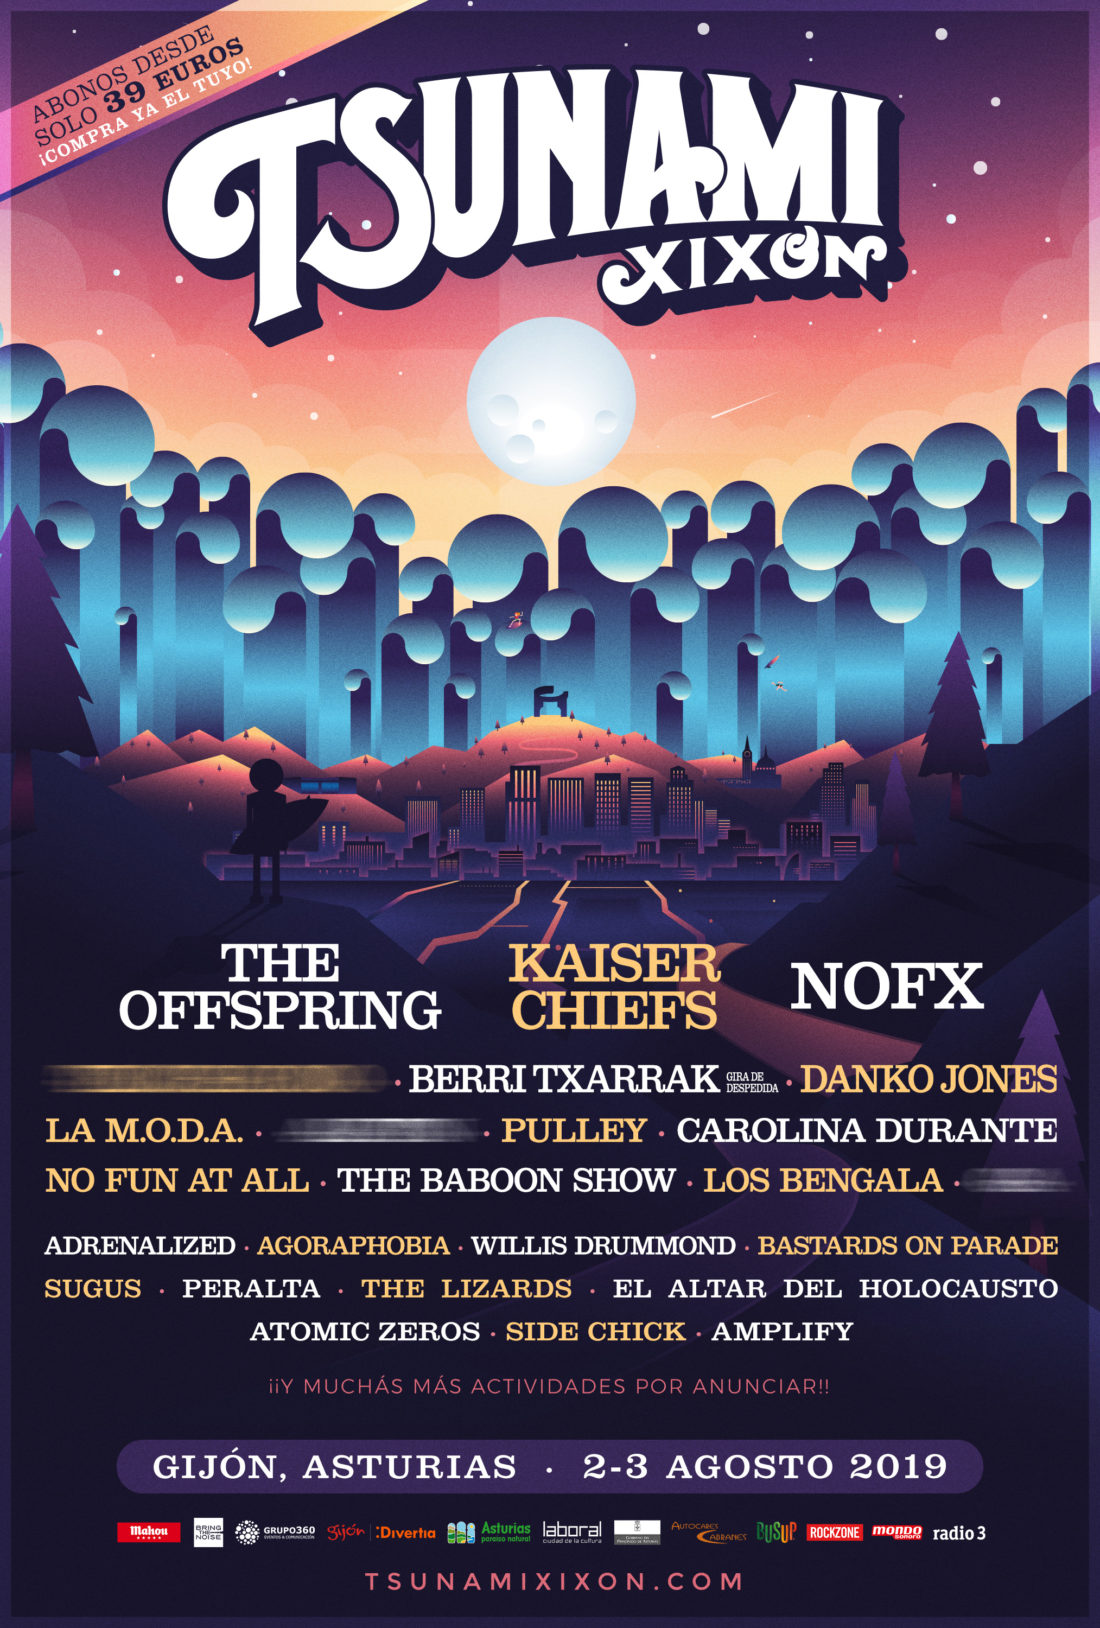 Tsunami Xixón 2019: NOFX, The Offspring, Berri Txarrak, Danko Jones...  - Página 4 Tsunami-Xixon-2019-Official-Poster-1100x1628